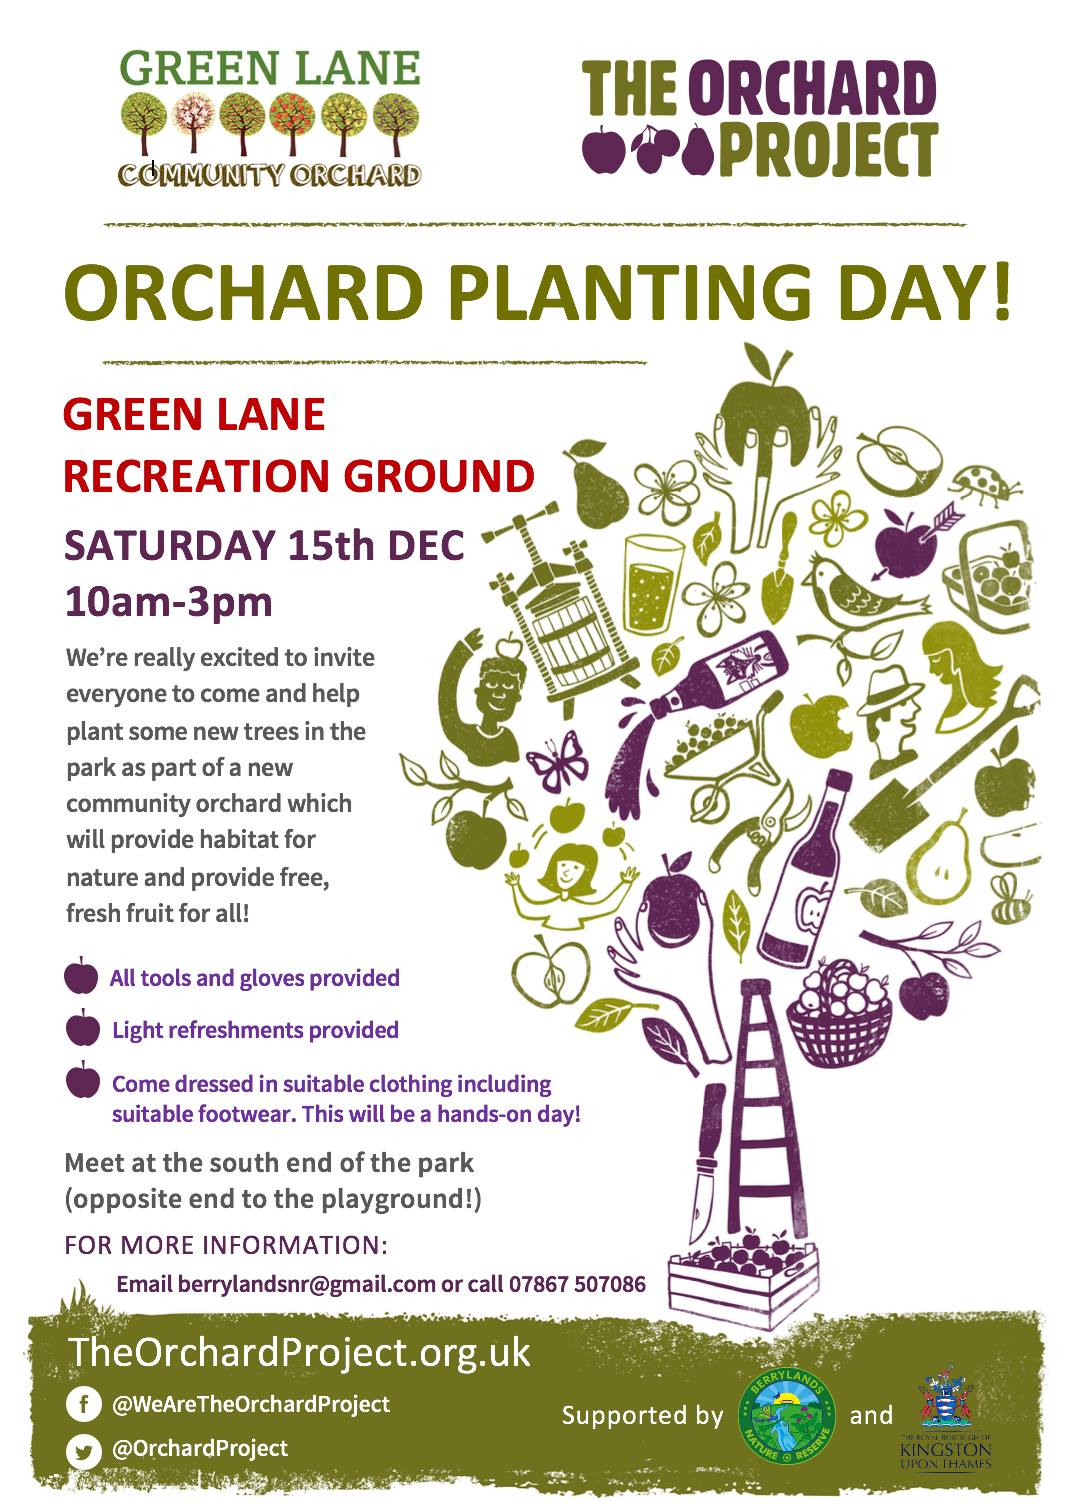 Planting of new Green Lane Community Orchard